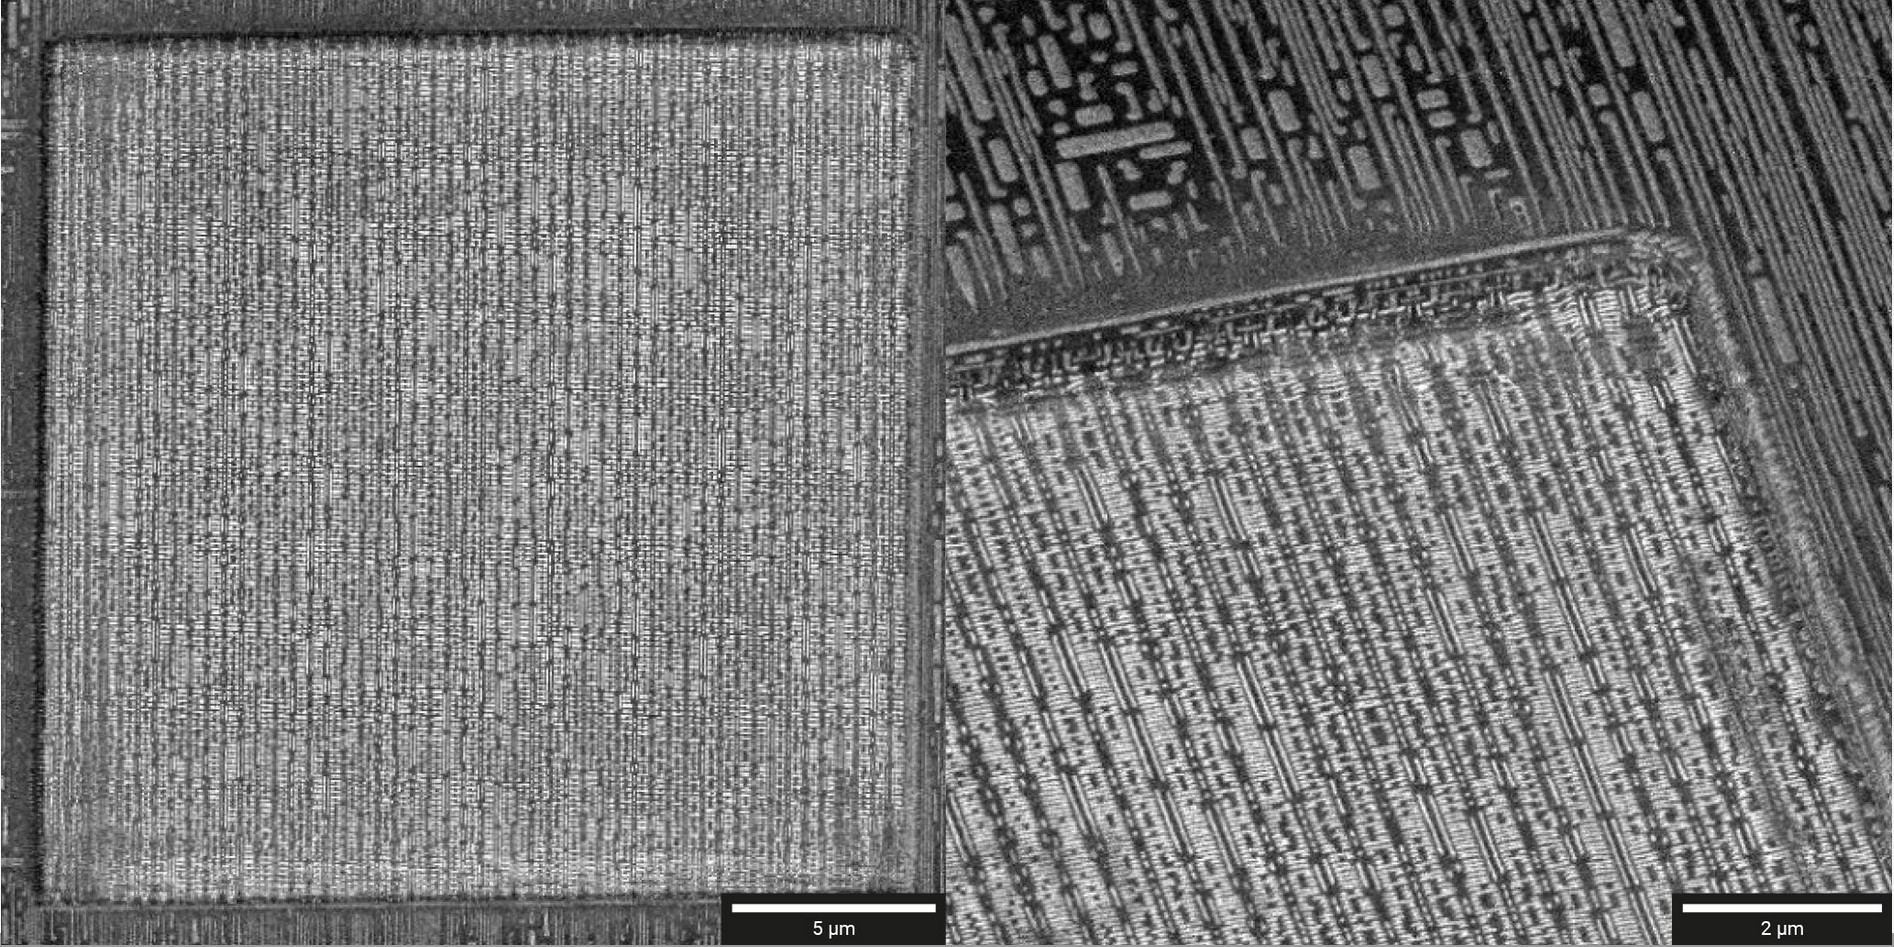 (Left) Overview of delayered area (20 × 20 μm²) down to via contact layer. (Right) Detail showing smooth polished walls.